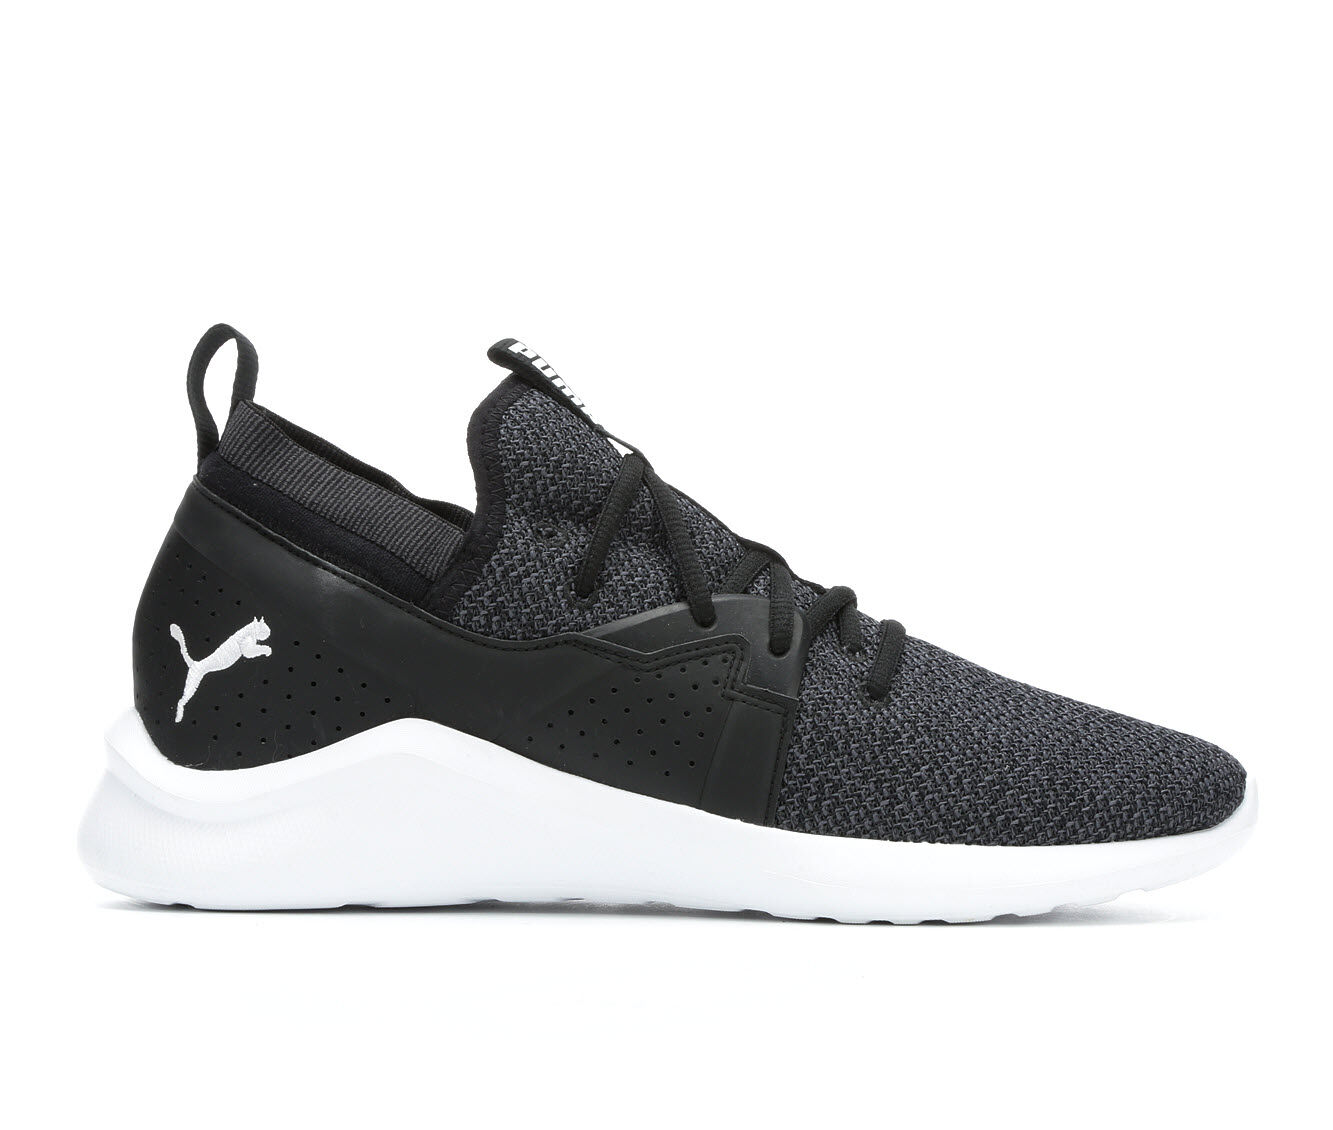 Men's Puma Emergence Sneakers Blk/Wht